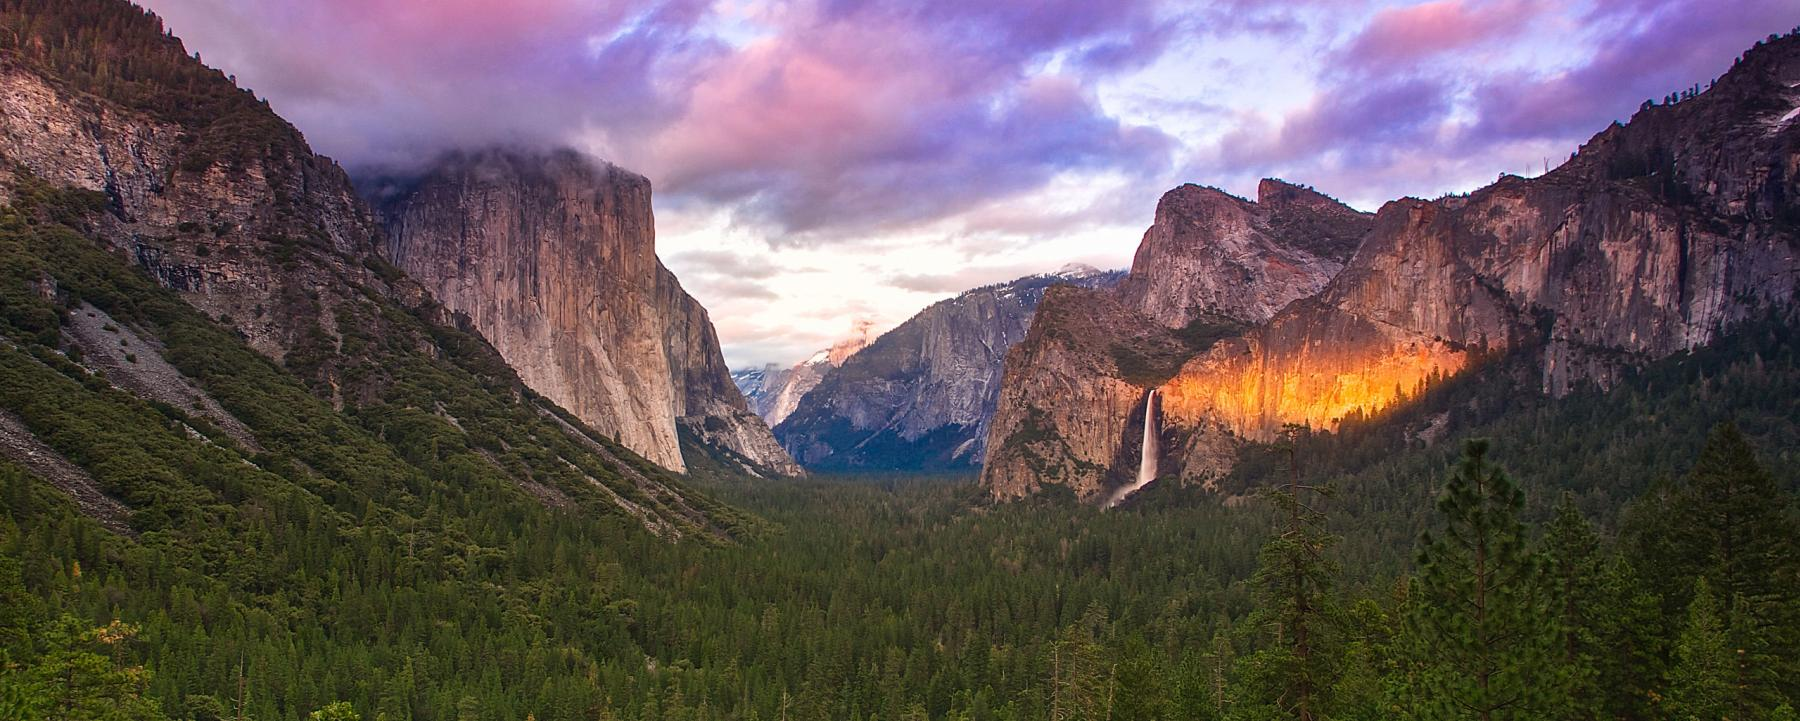 View of the waterfalls and cliffs in Yosemite